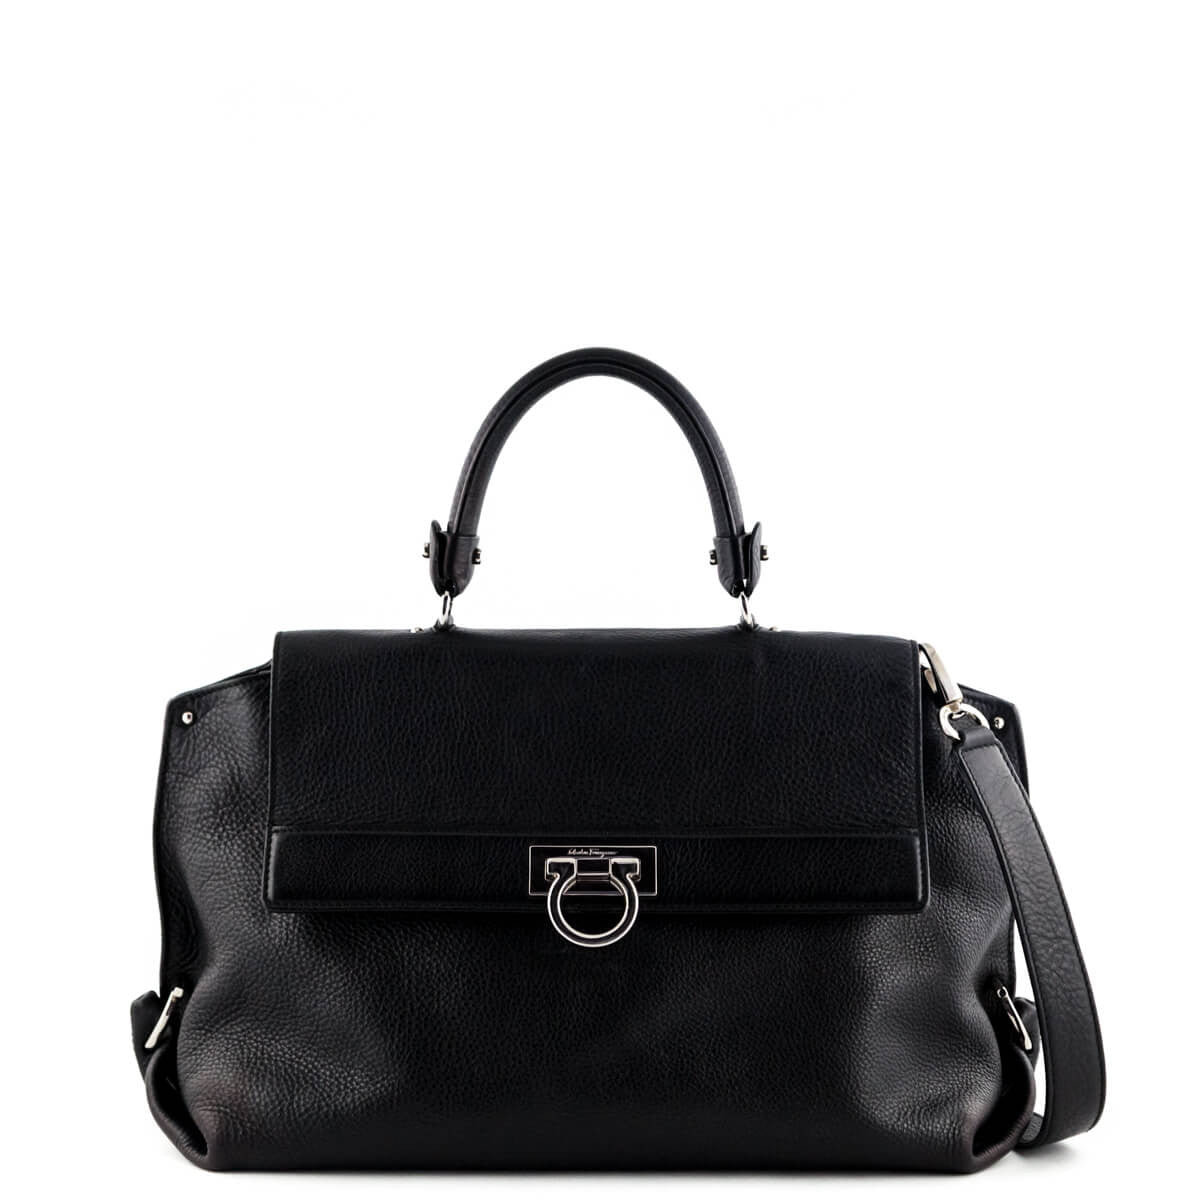 a64b8a0e47 Salvatore Ferragamo Black Pebbled Leather Sofia Satchel - LOVE that BAG -  Preowned Authentic Designer Handbags ...